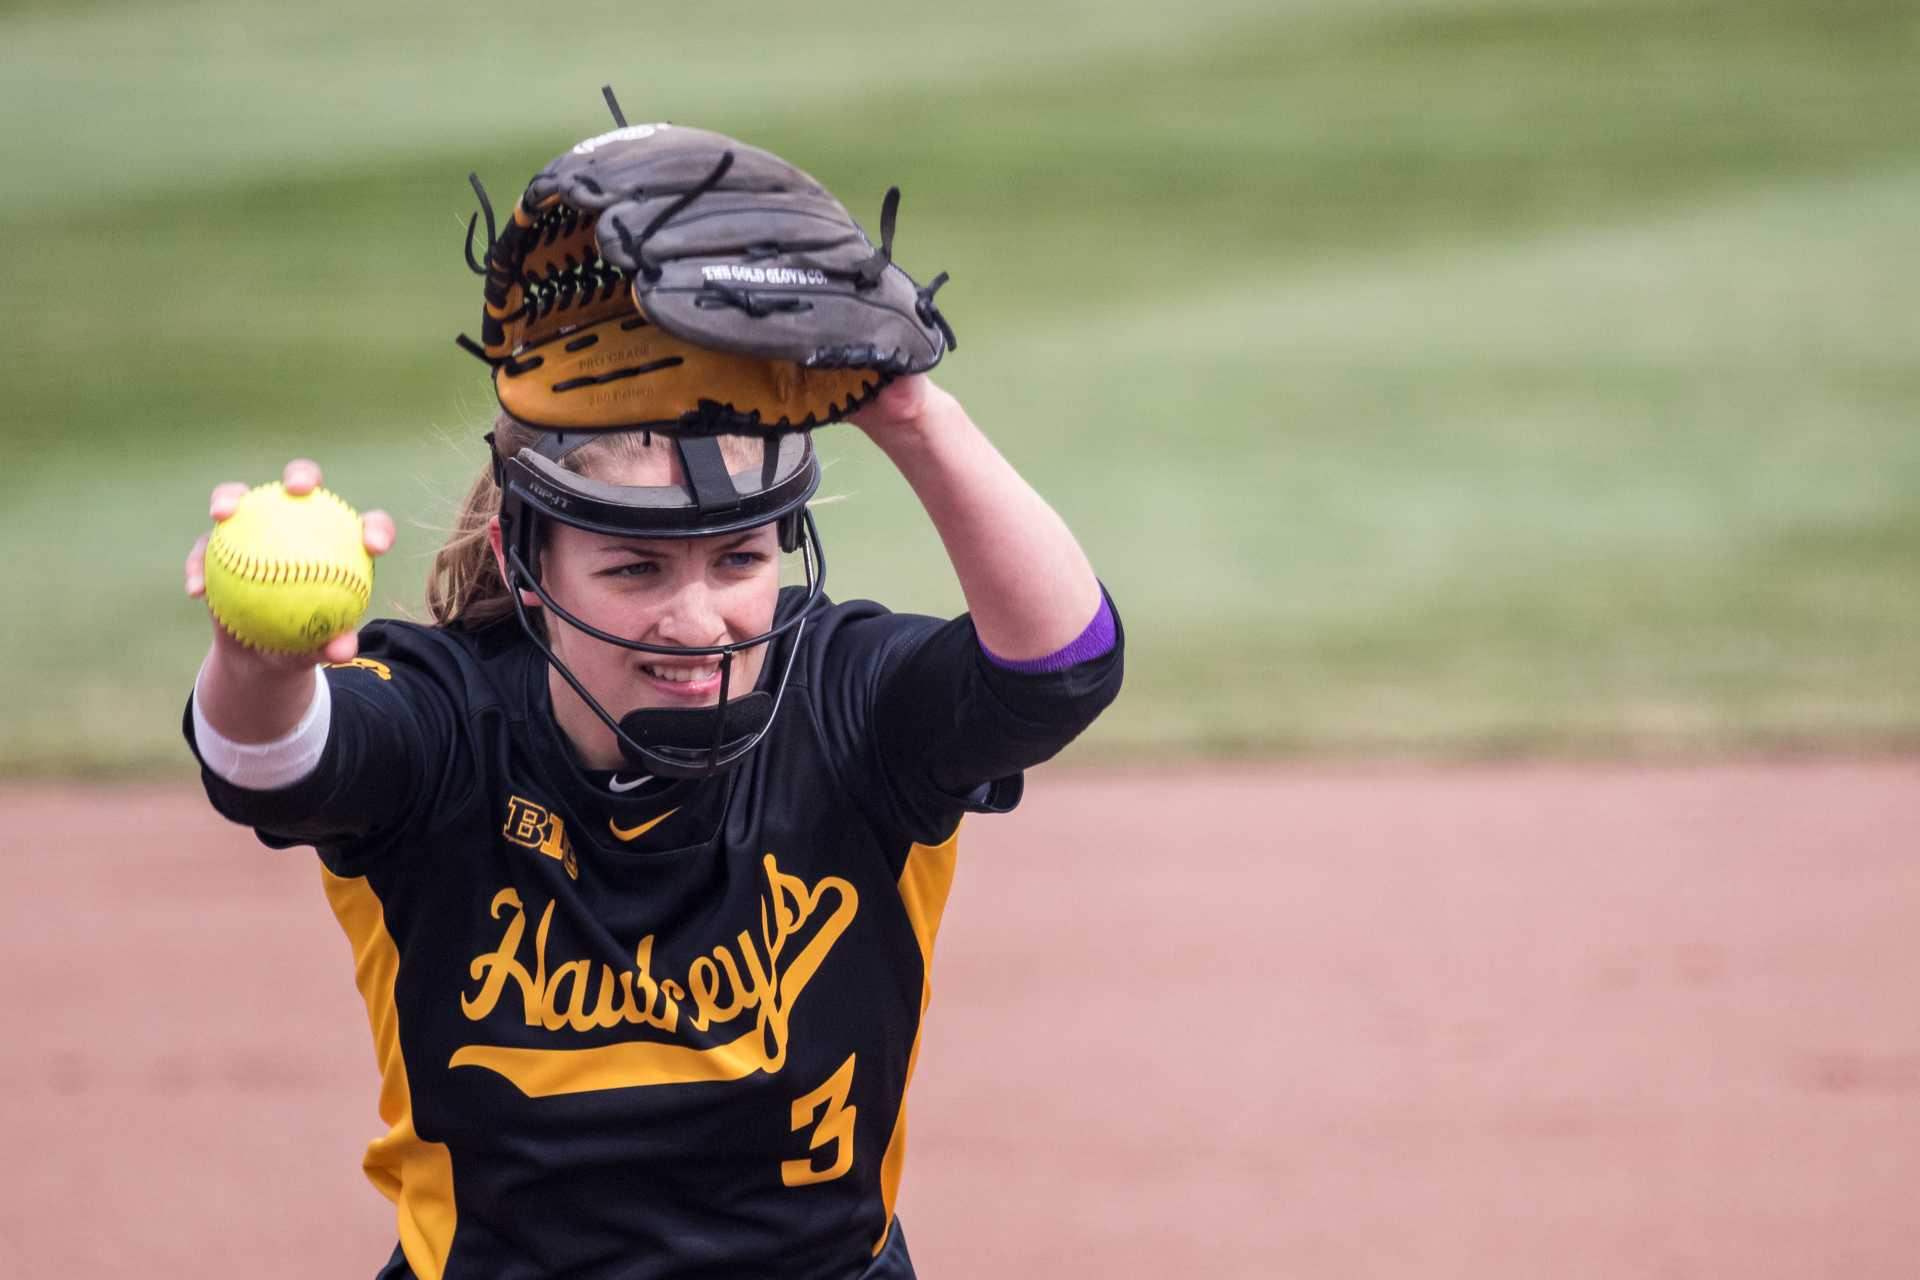 Photos: Softball vs Minnesota game 1